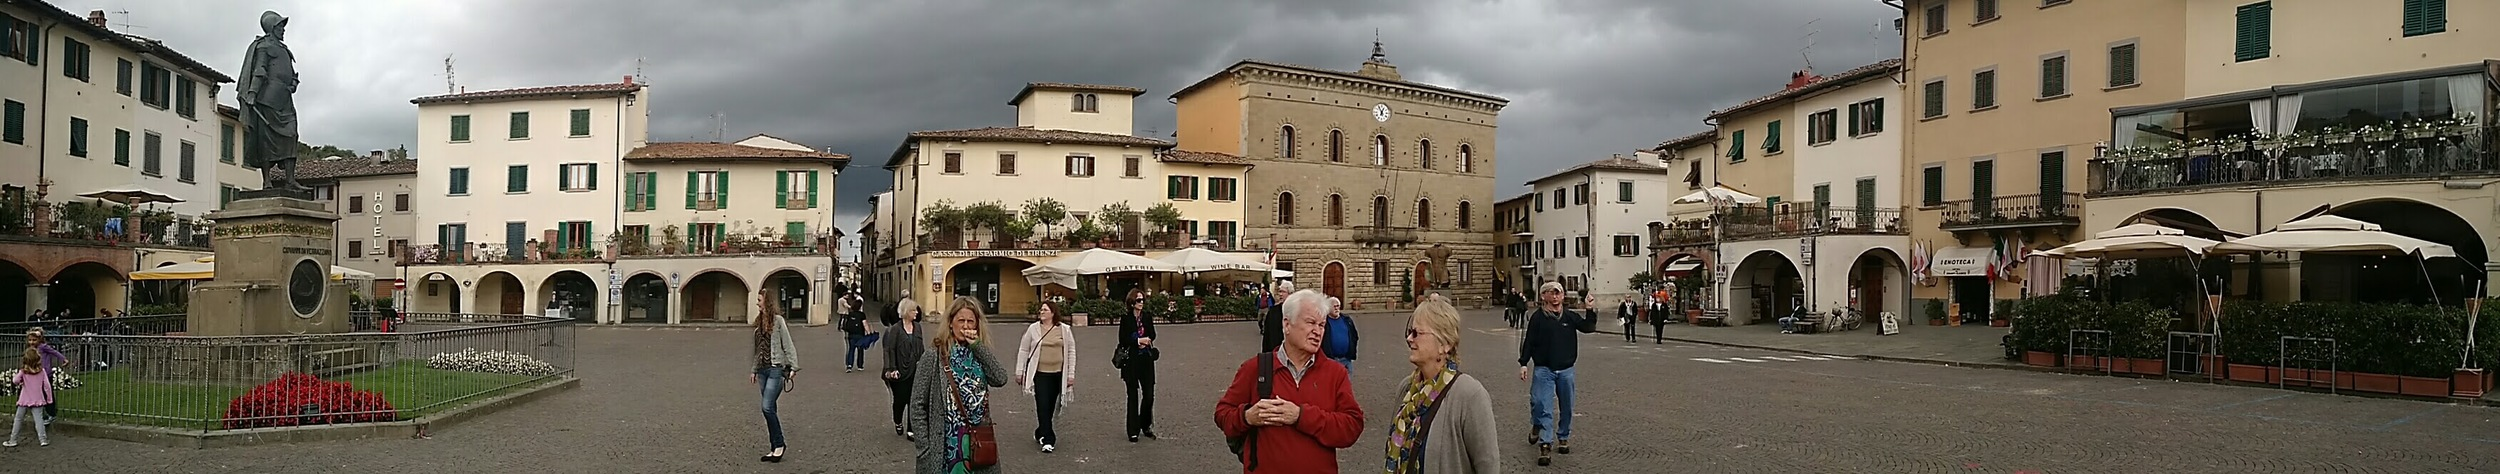 A panorama of this Tuscan town